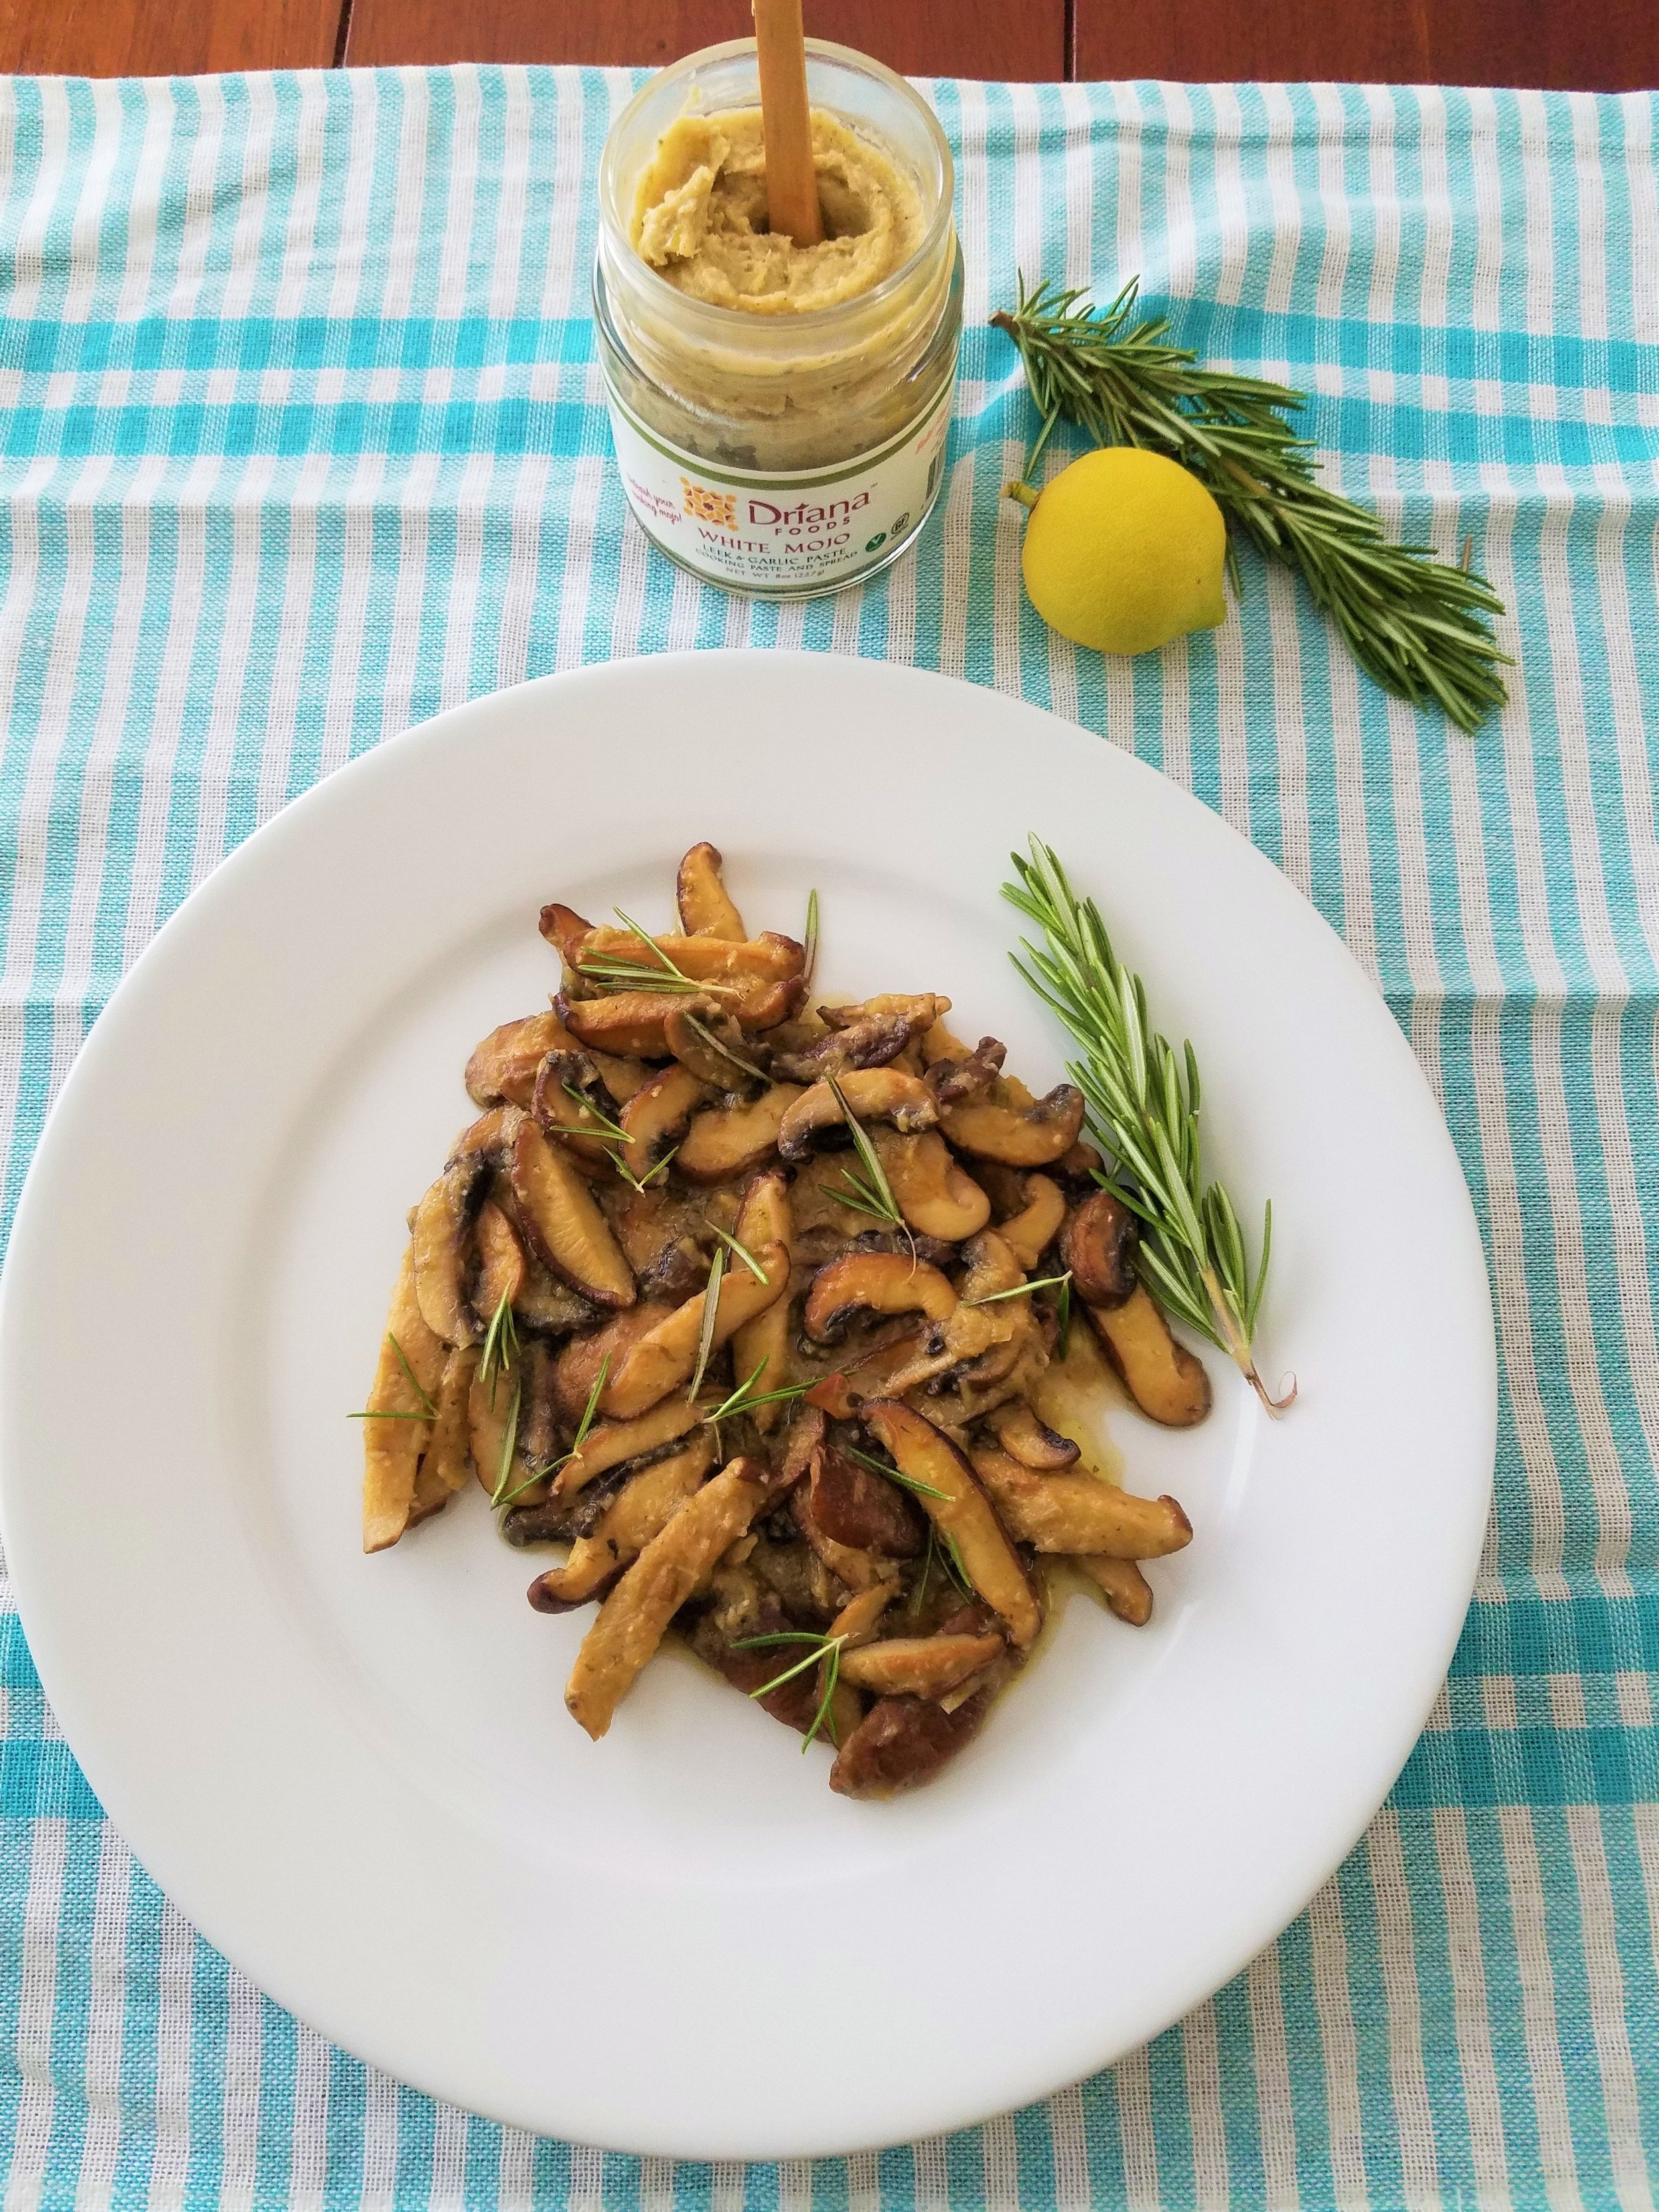 Sauteed Mushrooms with Rosemary Lemon Sauce